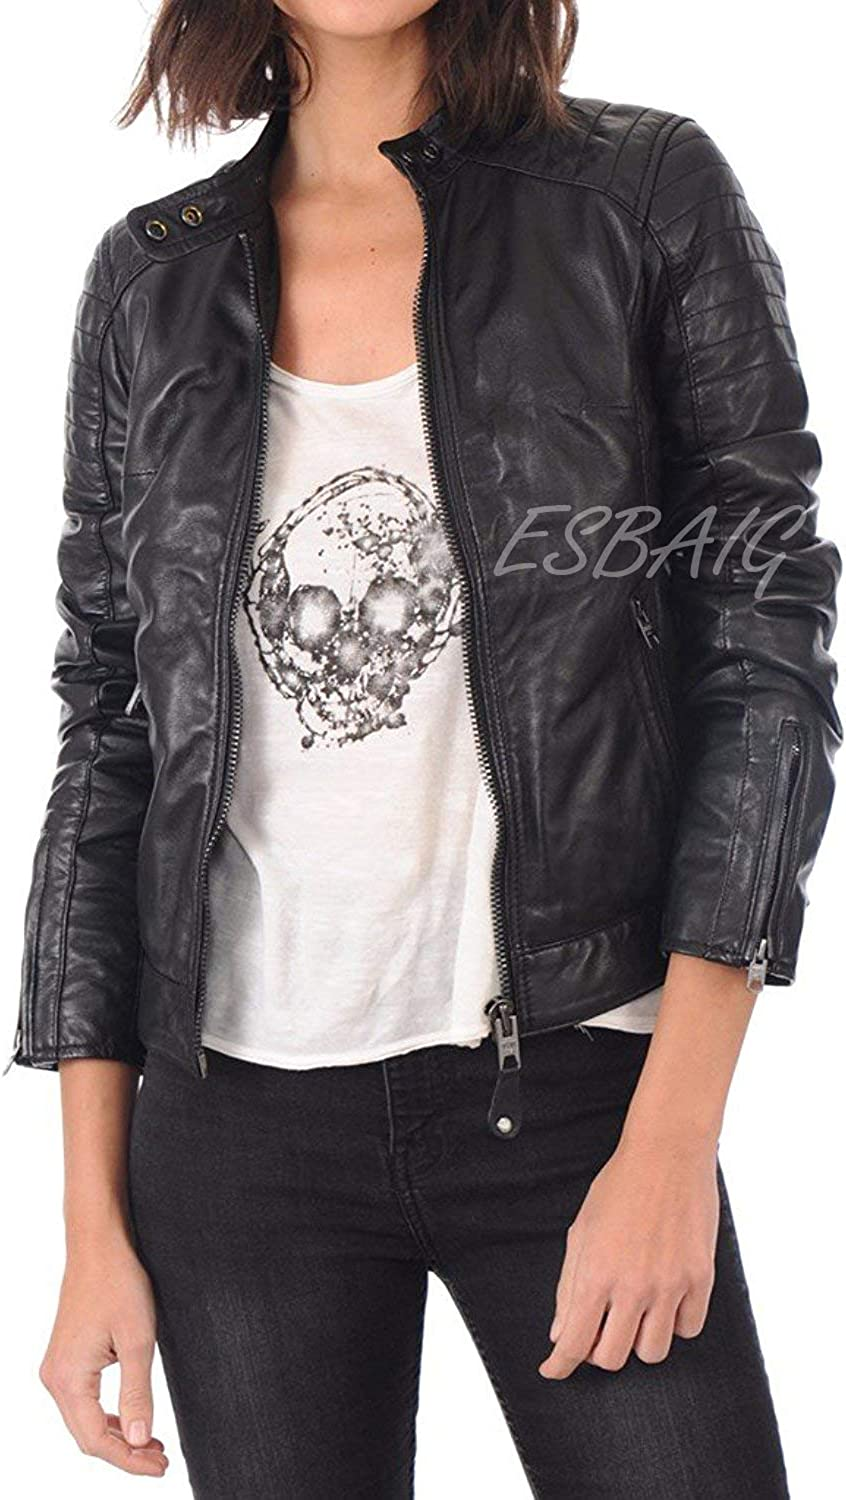 ESBAIG Womens Leather Jackets Stylish Motorcycle Bomber Biker Real Lambskin Leather Jacket for Women 506